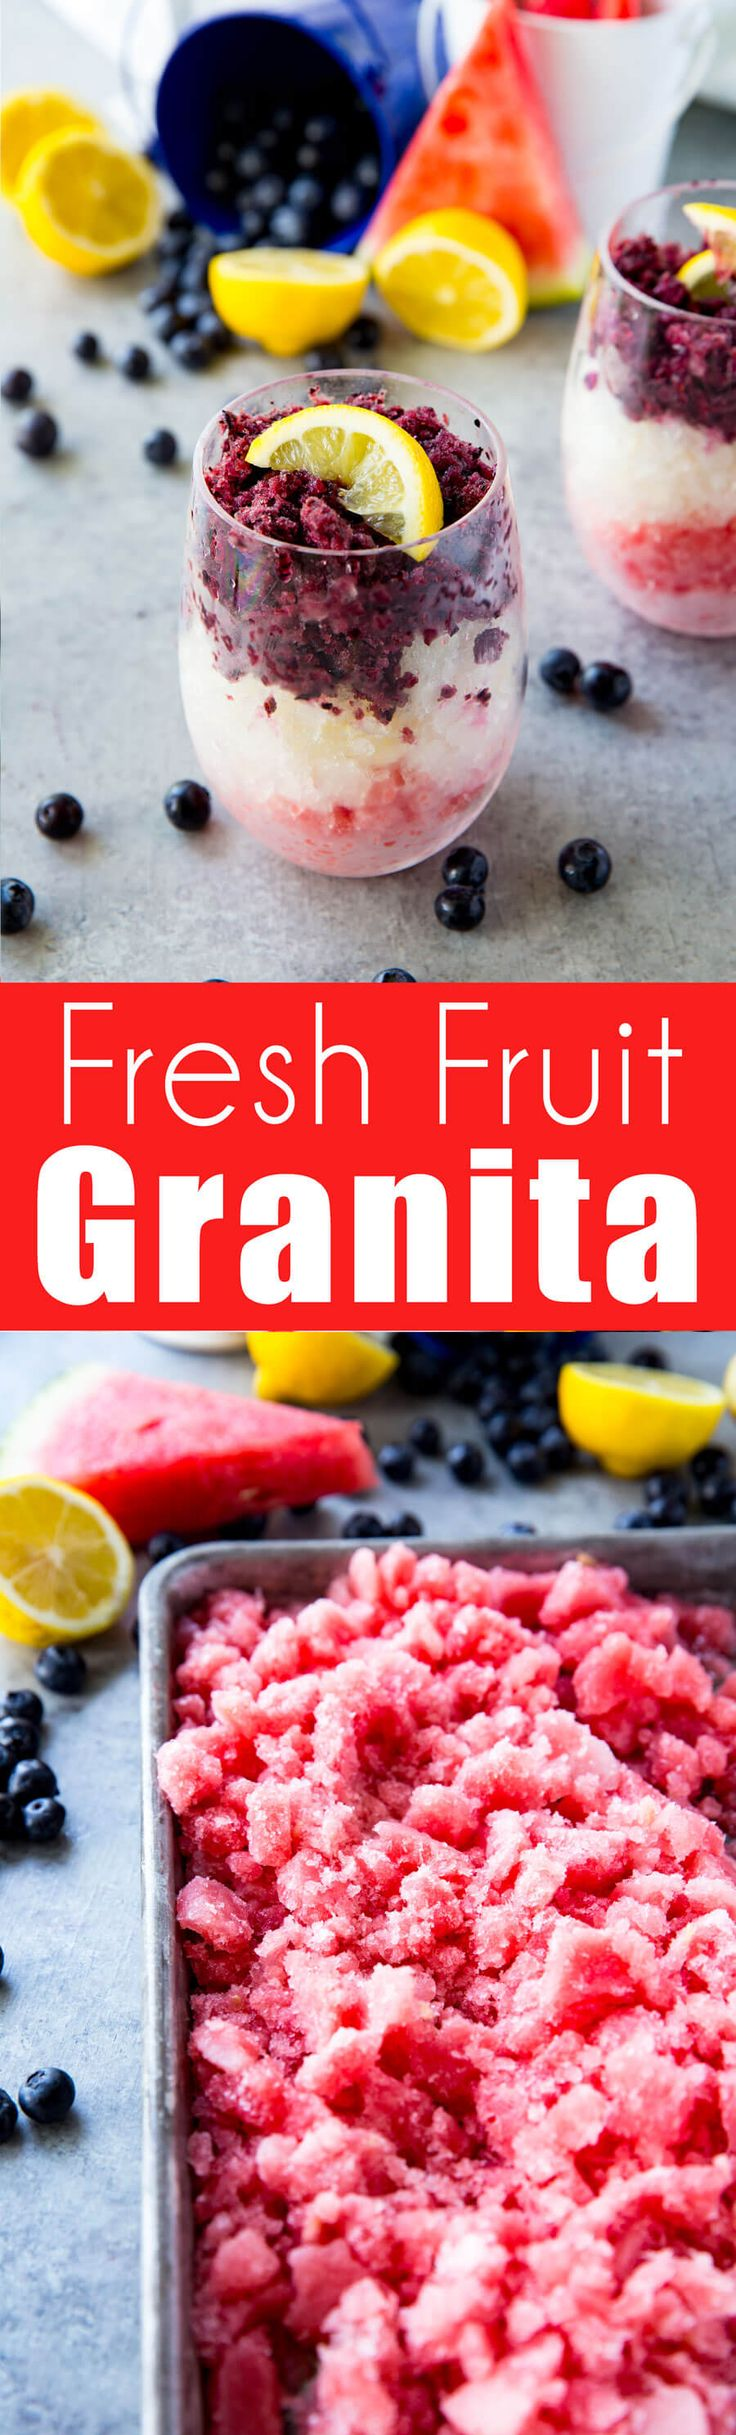 Fresh fruit granita, a layered fruit ice that is loaded with flavor